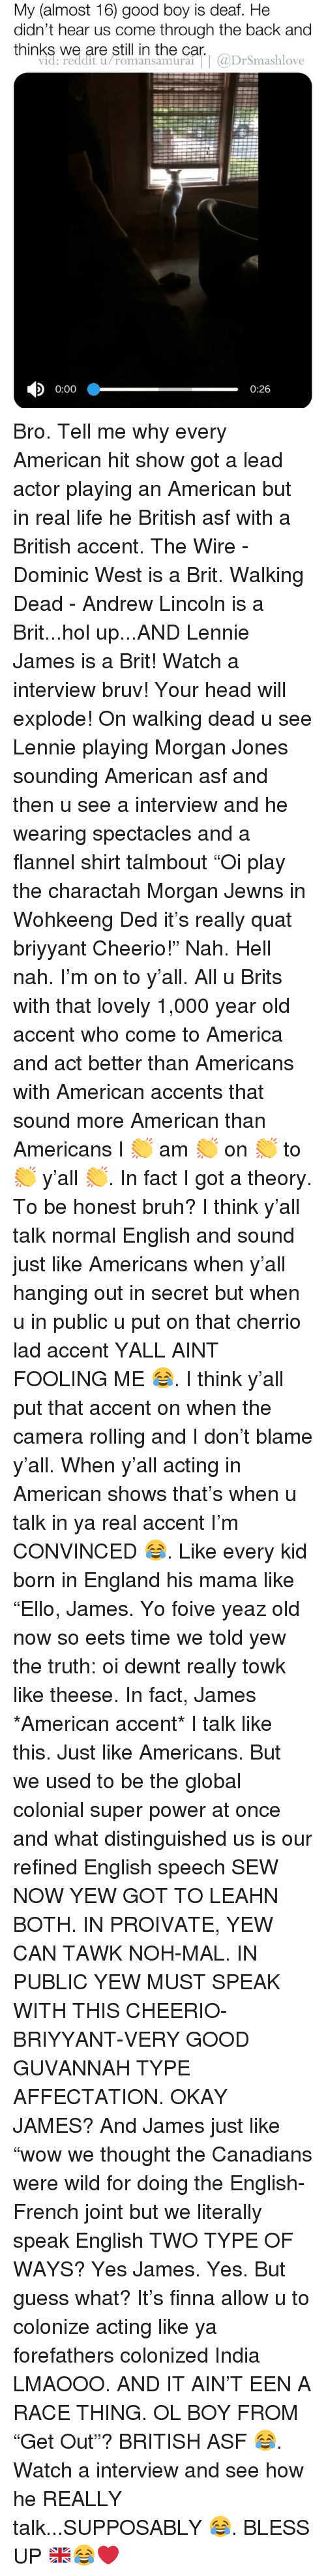 """Bruv: My (almost 16) good boy is deaf. He  didn't hear us come through the back and  thinks we are still in the car.  vid: reddit u/romansamurai  Dromashlove  0:00  0:26 Bro. Tell me why every American hit show got a lead actor playing an American but in real life he British asf with a British accent. The Wire - Dominic West is a Brit. Walking Dead - Andrew Lincoln is a Brit...hol up...AND Lennie James is a Brit! Watch a interview bruv! Your head will explode! On walking dead u see Lennie playing Morgan Jones sounding American asf and then u see a interview and he wearing spectacles and a flannel shirt talmbout """"Oi play the charactah Morgan Jewns in Wohkeeng Ded it's really quat briyyant Cheerio!"""" Nah. Hell nah. I'm on to y'all. All u Brits with that lovely 1,000 year old accent who come to America and act better than Americans with American accents that sound more American than Americans I 👏 am 👏 on 👏 to 👏 y'all 👏. In fact I got a theory. To be honest bruh? I think y'all talk normal English and sound just like Americans when y'all hanging out in secret but when u in public u put on that cherrio lad accent YALL AINT FOOLING ME 😂. I think y'all put that accent on when the camera rolling and I don't blame y'all. When y'all acting in American shows that's when u talk in ya real accent I'm CONVINCED 😂. Like every kid born in England his mama like """"Ello, James. Yo foive yeaz old now so eets time we told yew the truth: oi dewnt really towk like theese. In fact, James *American accent* I talk like this. Just like Americans. But we used to be the global colonial super power at once and what distinguished us is our refined English speech SEW NOW YEW GOT TO LEAHN BOTH. IN PROIVATE, YEW CAN TAWK NOH-MAL. IN PUBLIC YEW MUST SPEAK WITH THIS CHEERIO-BRIYYANT-VERY GOOD GUVANNAH TYPE AFFECTATION. OKAY JAMES? And James just like """"wow we thought the Canadians were wild for doing the English-French joint but we literally speak English TWO TYPE OF WAYS? Yes James. Yes. But guess what? """